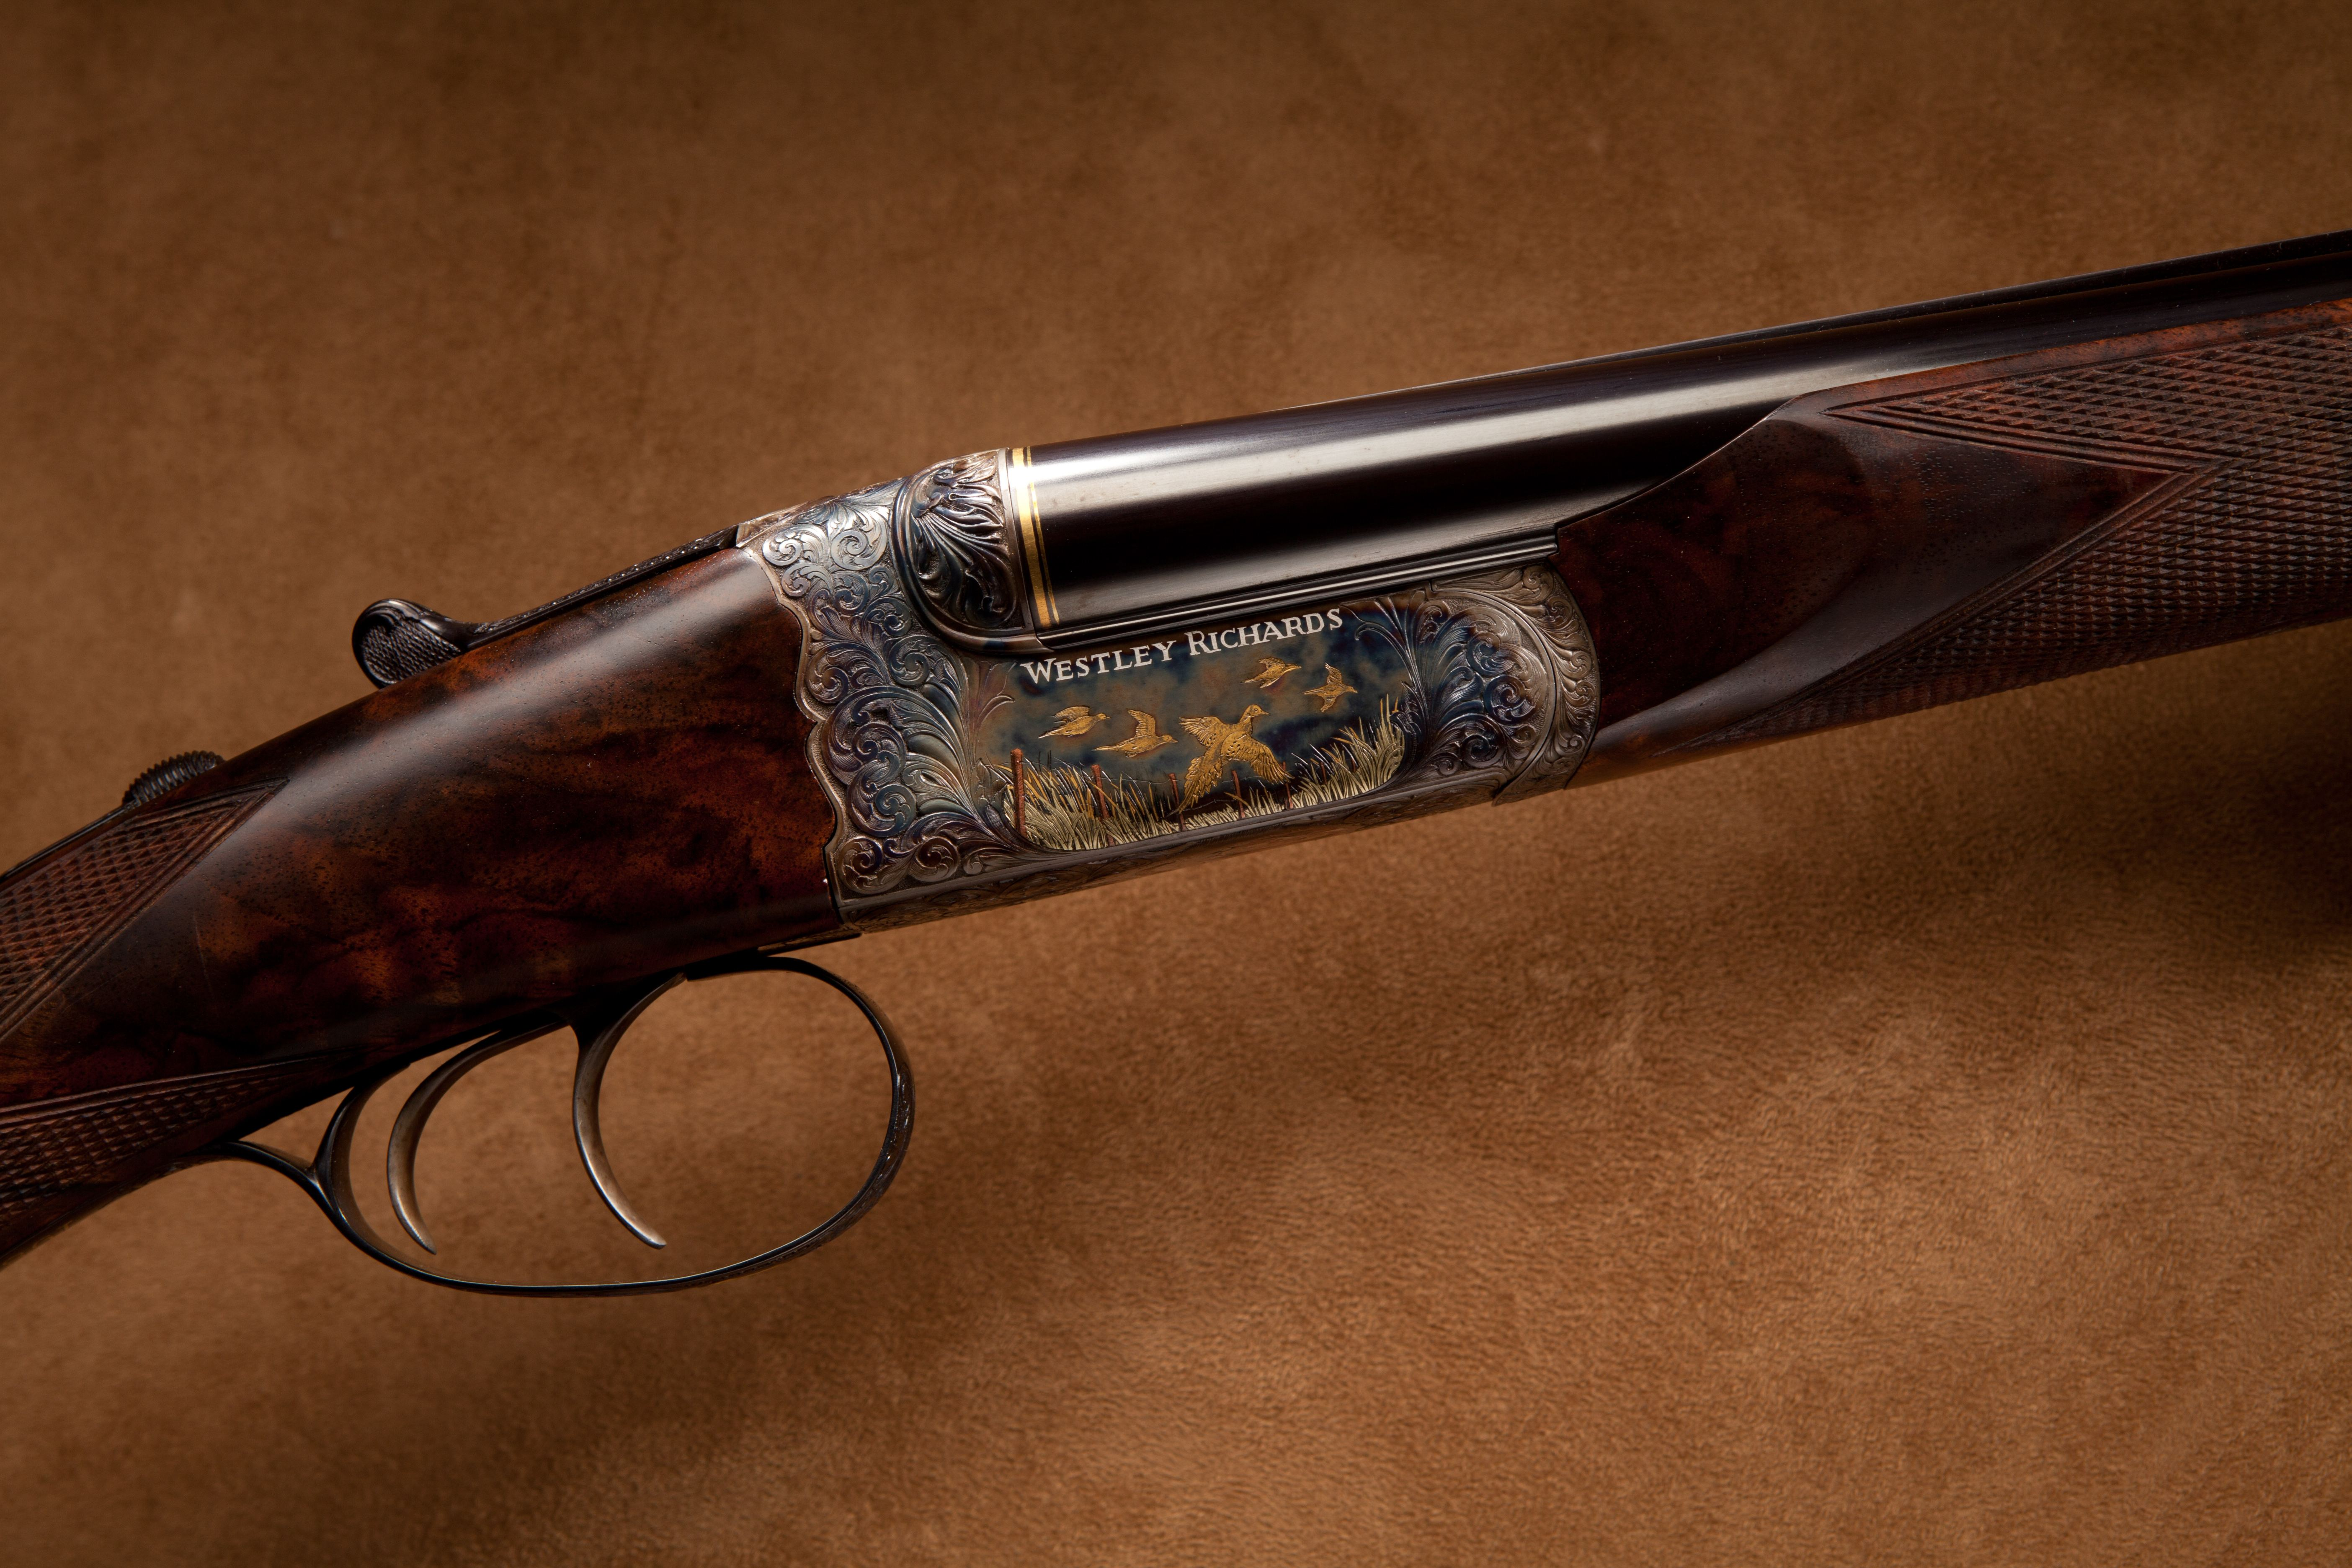 Westley Richards Side by Side Shotgun - .410 ga.